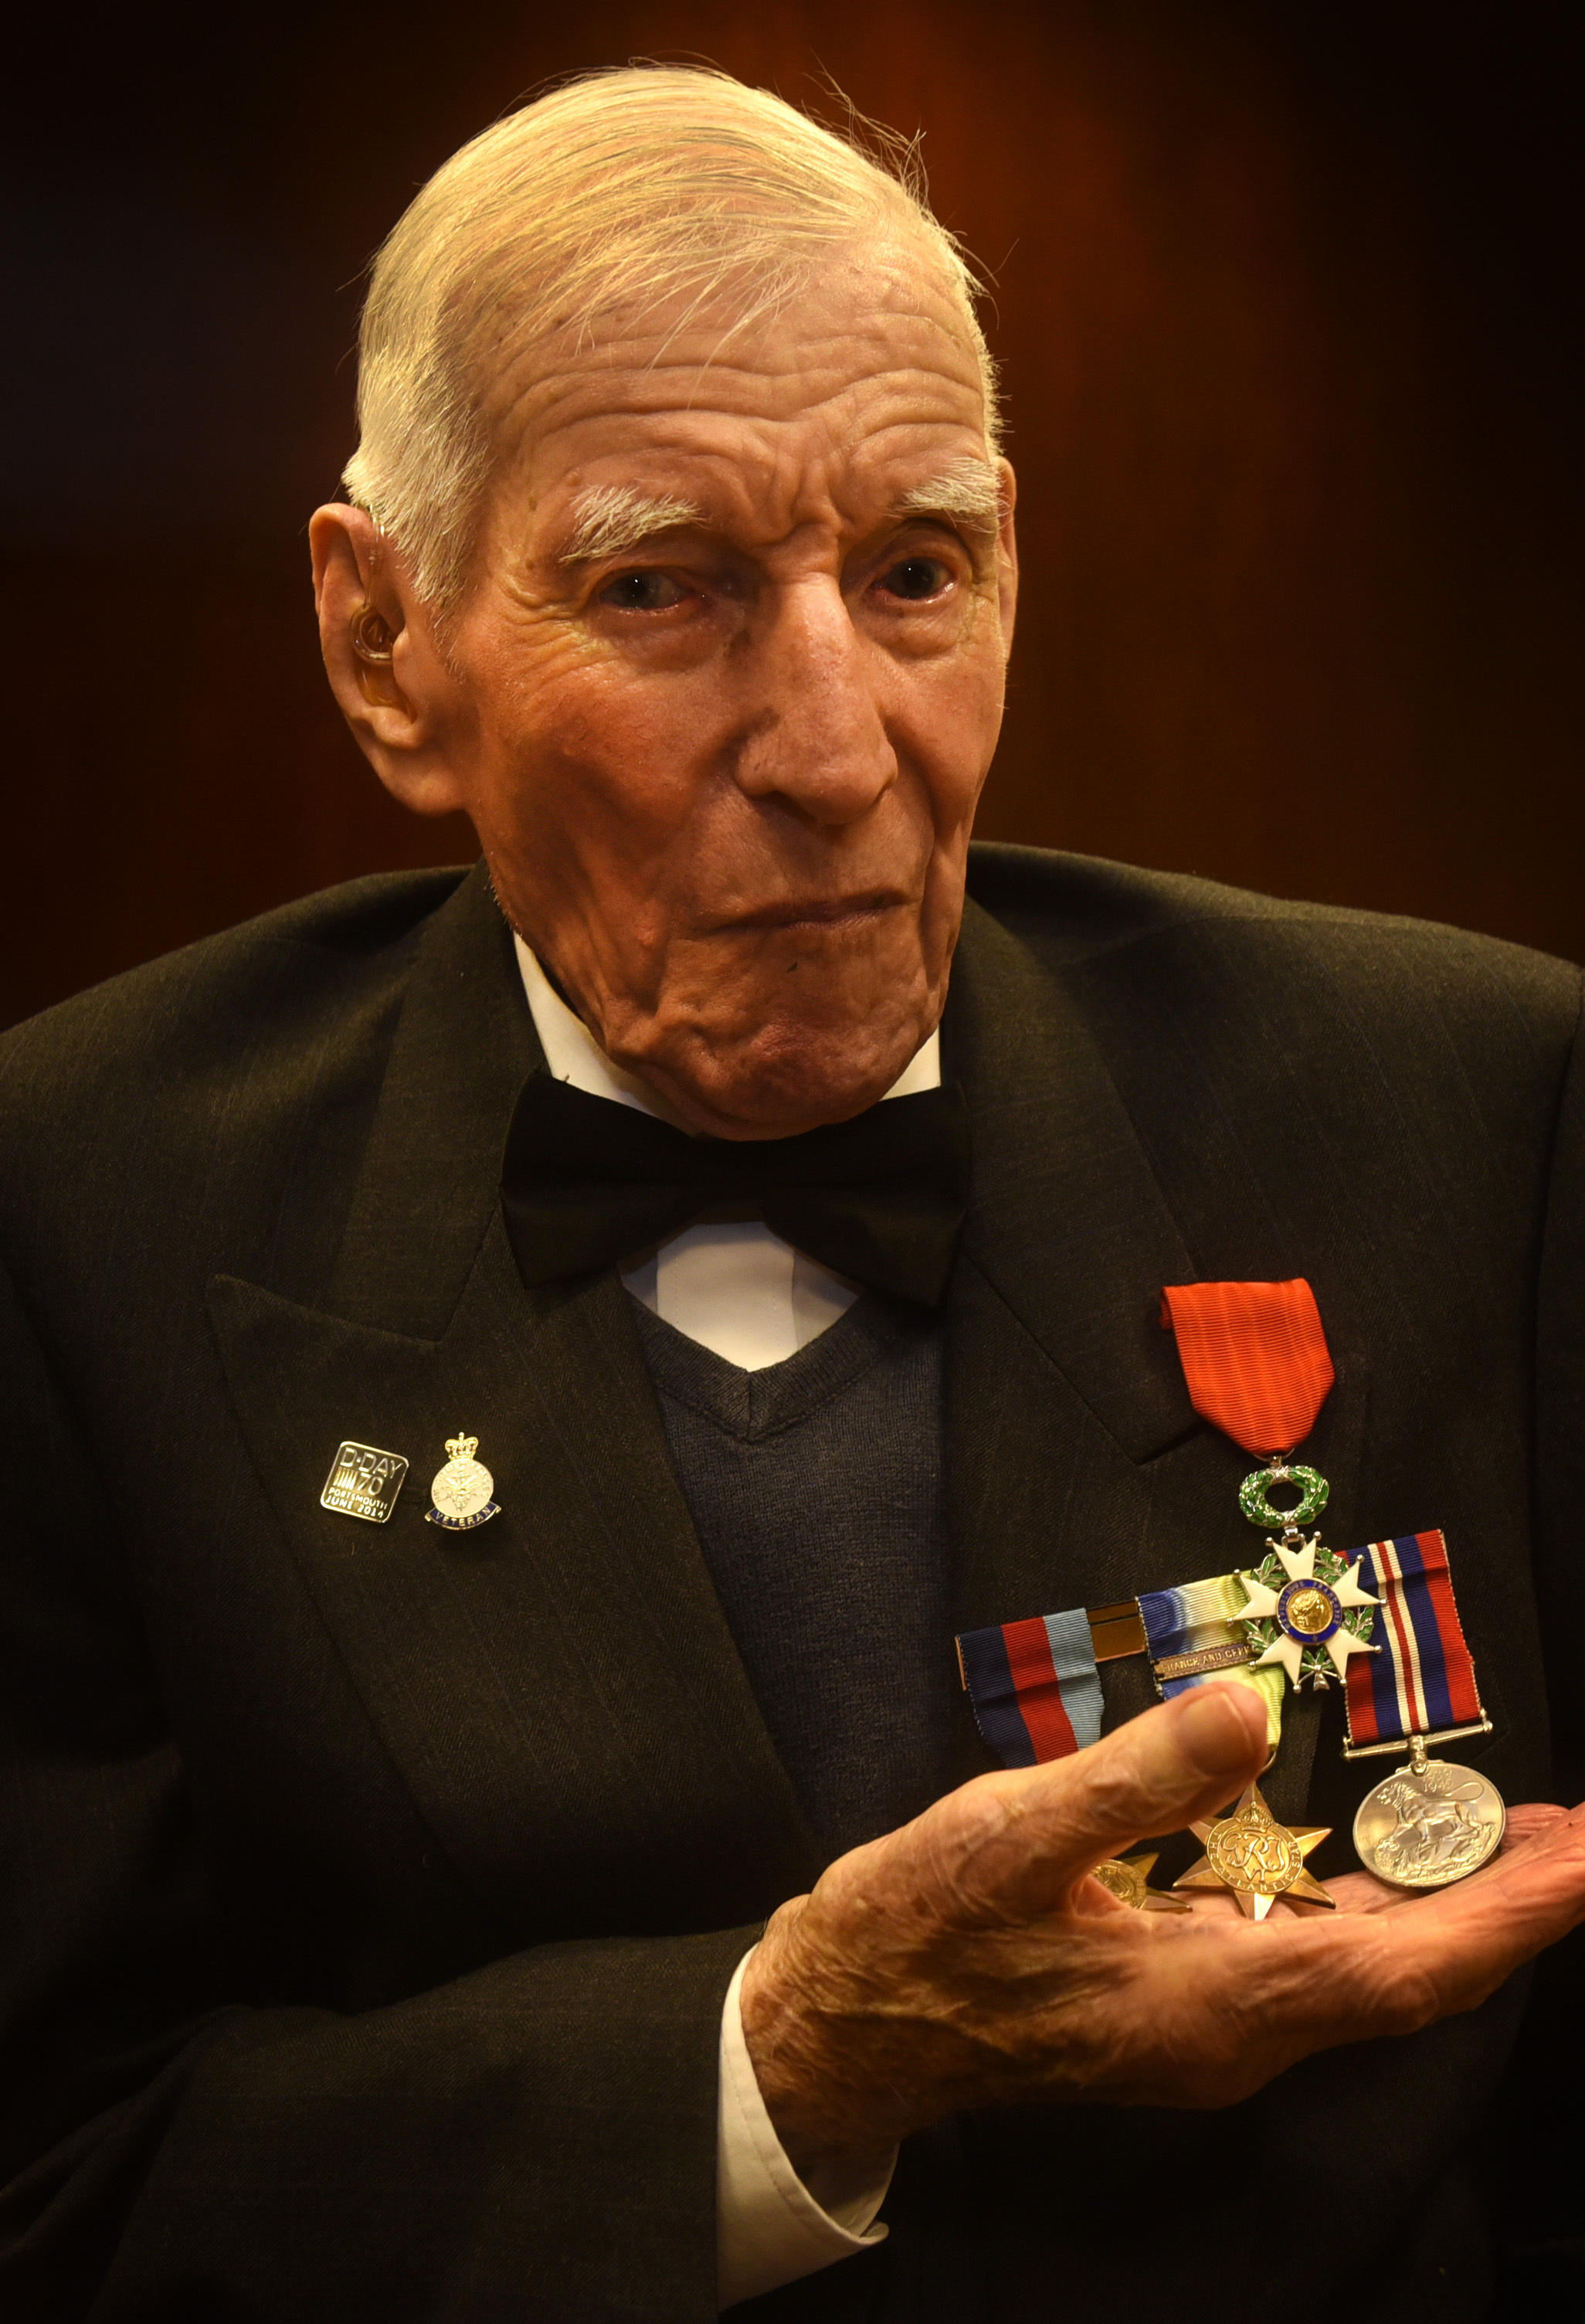 Stan Rhymes being presented with his Legion d'honneur medal by the French Ambassador Jean Pierre Jouyet on November 22, 2017. Picture: Richard Cave